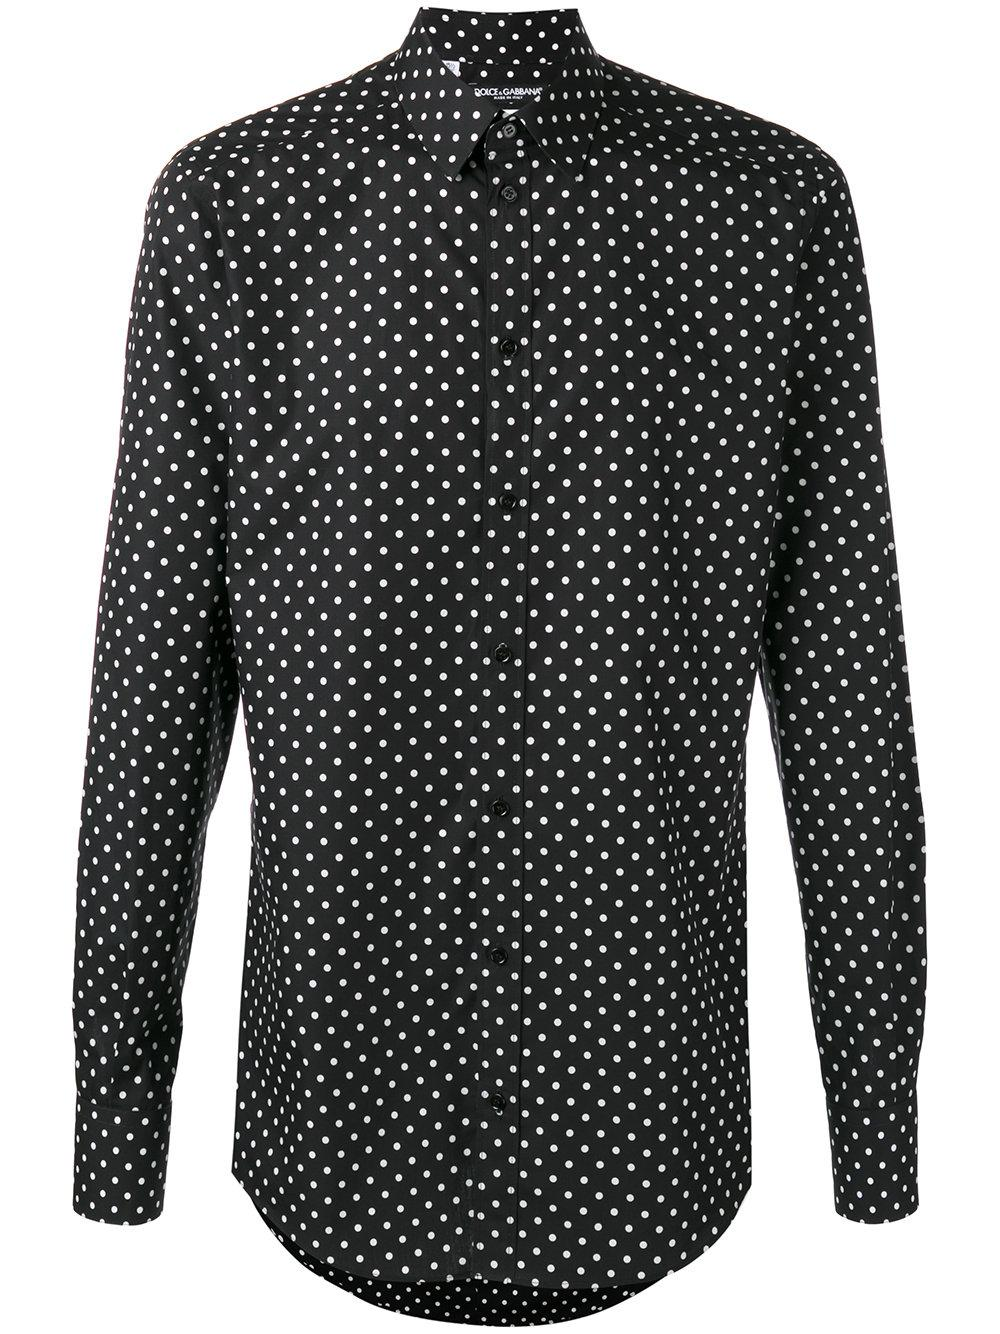 Color: white with red and black square polka dot type of pattern. It is greatly appreciated! Mens BRISTOL AND BULL Button Down Shirt Polka Dot Long Sleeve Black White M Med.